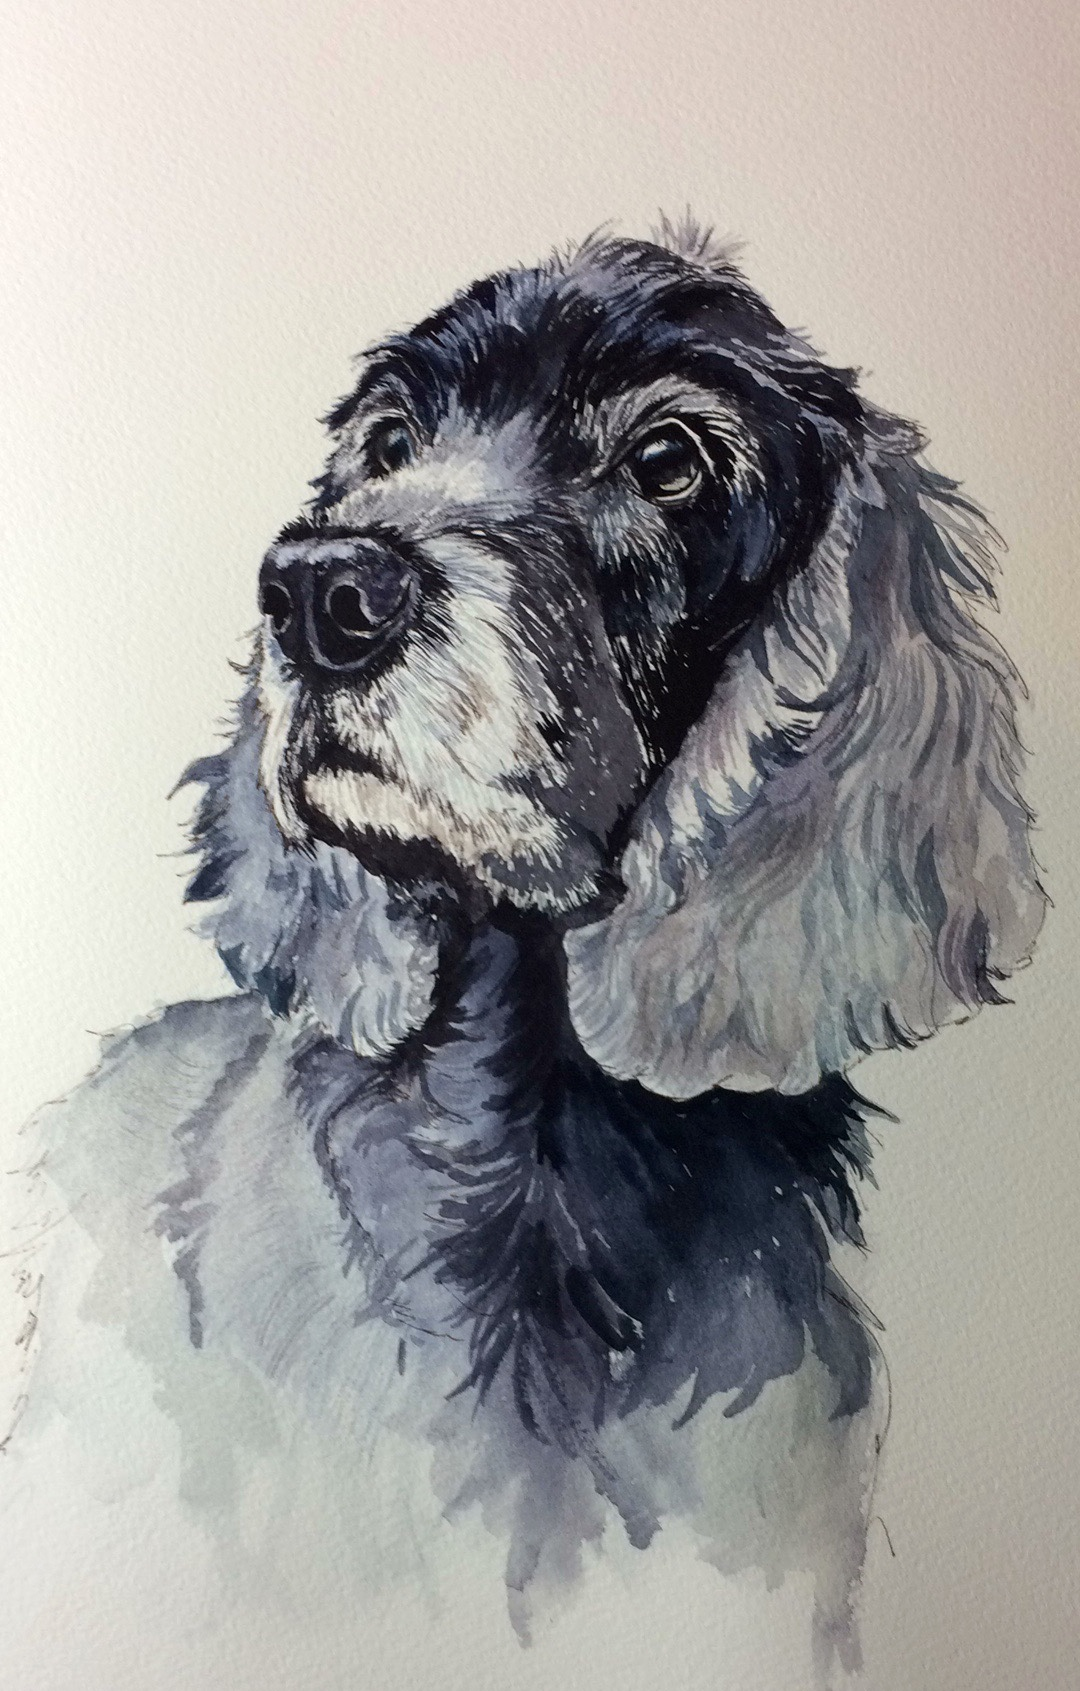 Fanny aged 12 and 3/4 a blue roan cocker spaniel